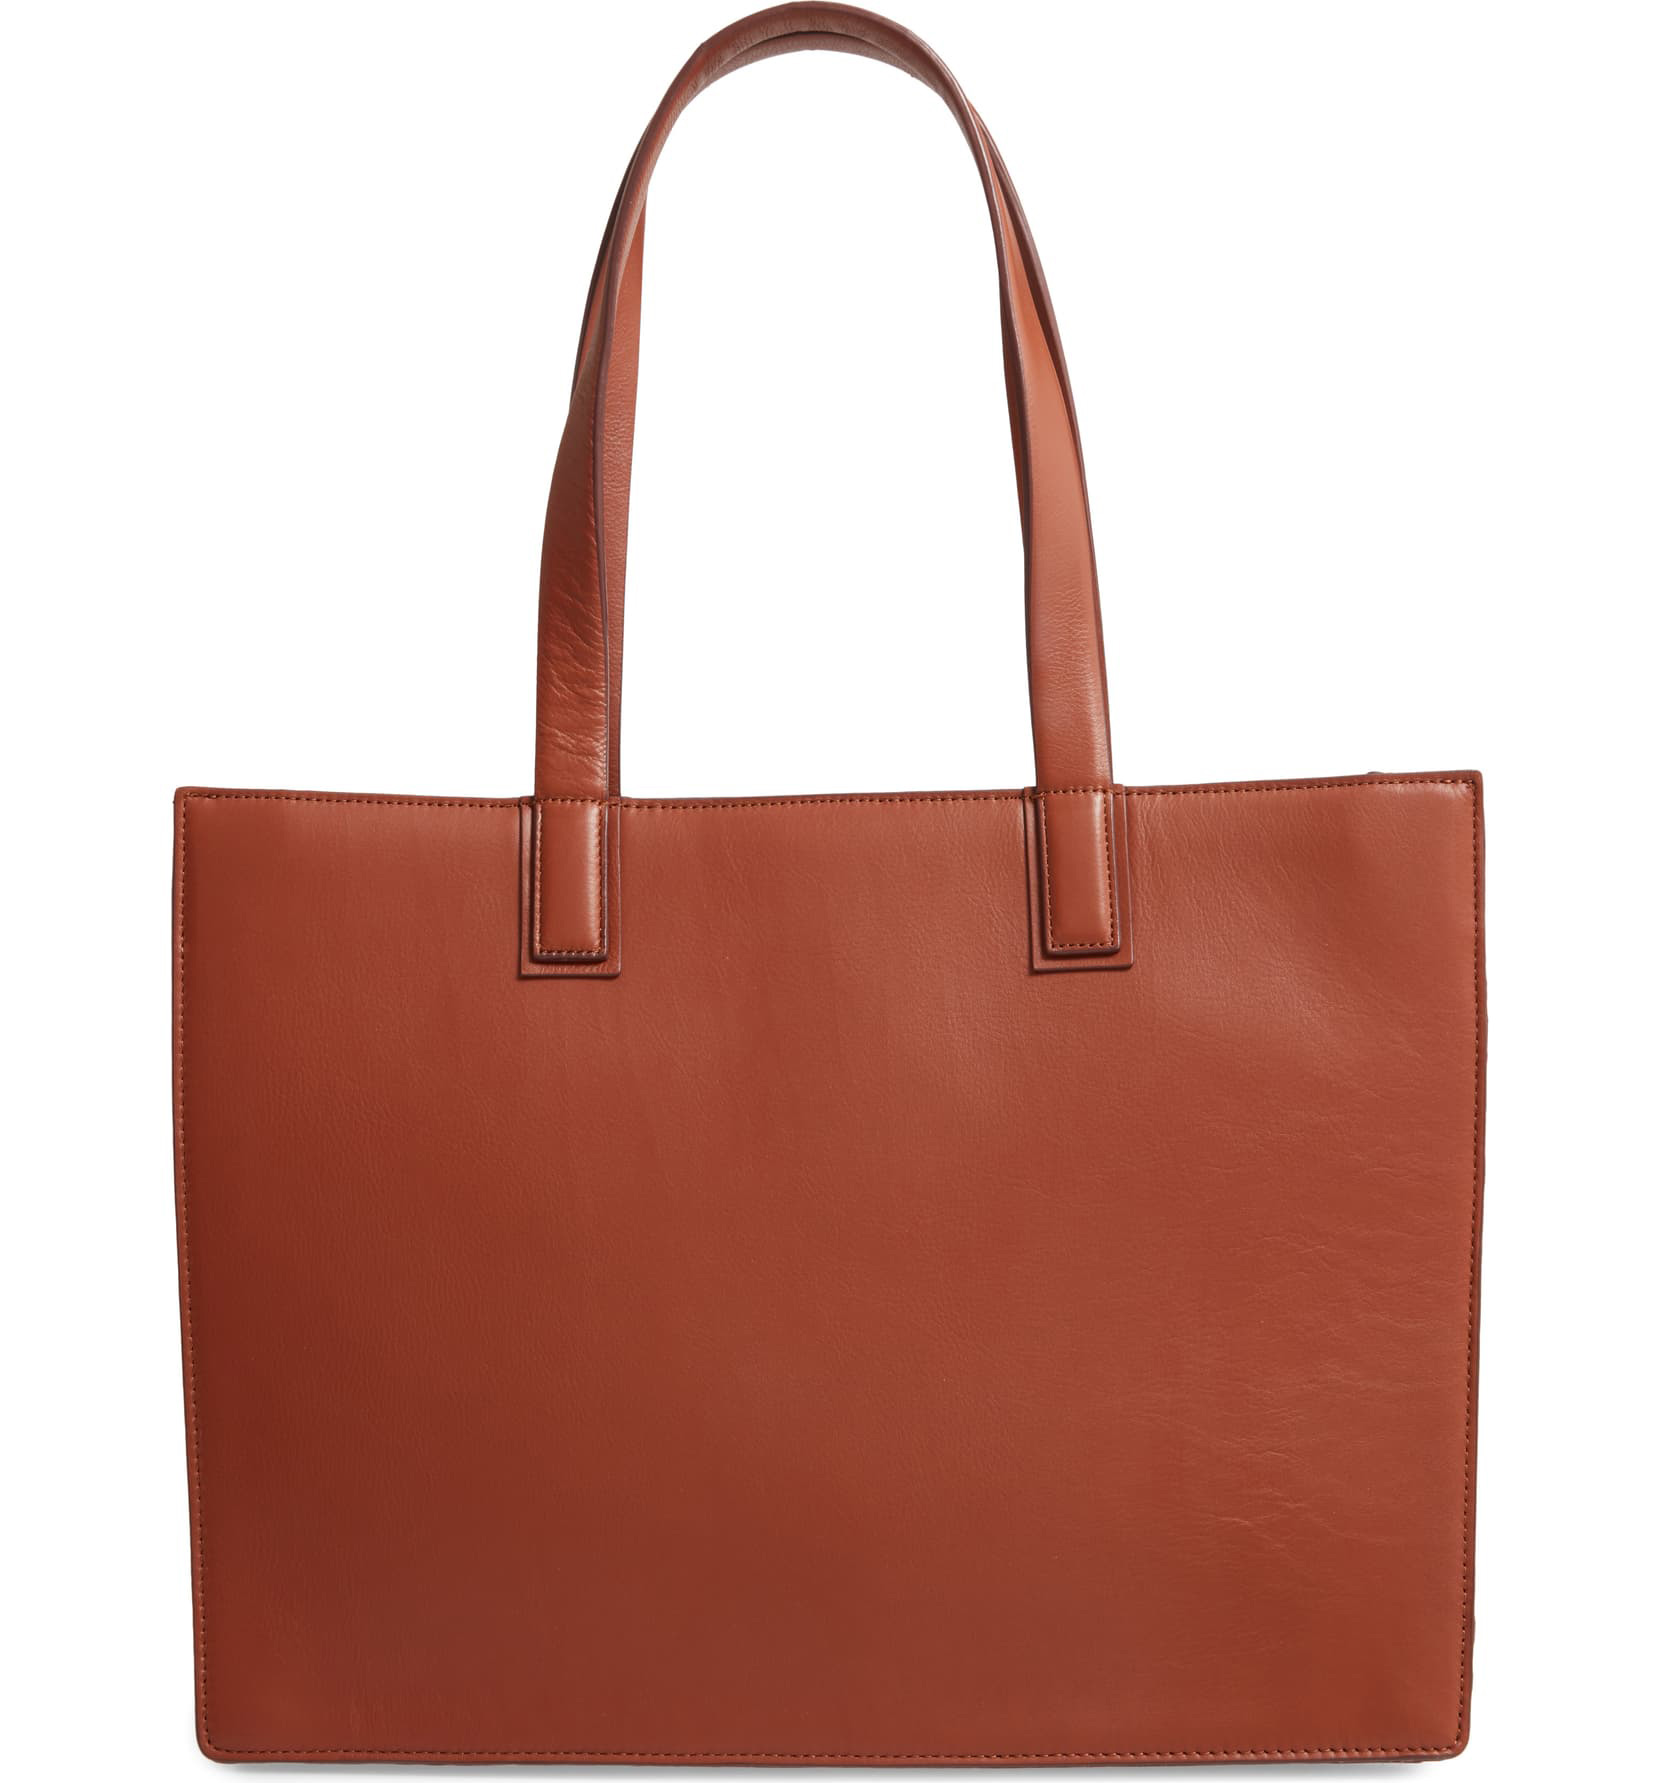 NORDSTROM Concertina Leather Accordion Tote, Main, color, BROWN TOFFEE Concertina Leather Accordion Tote NORDSTROM